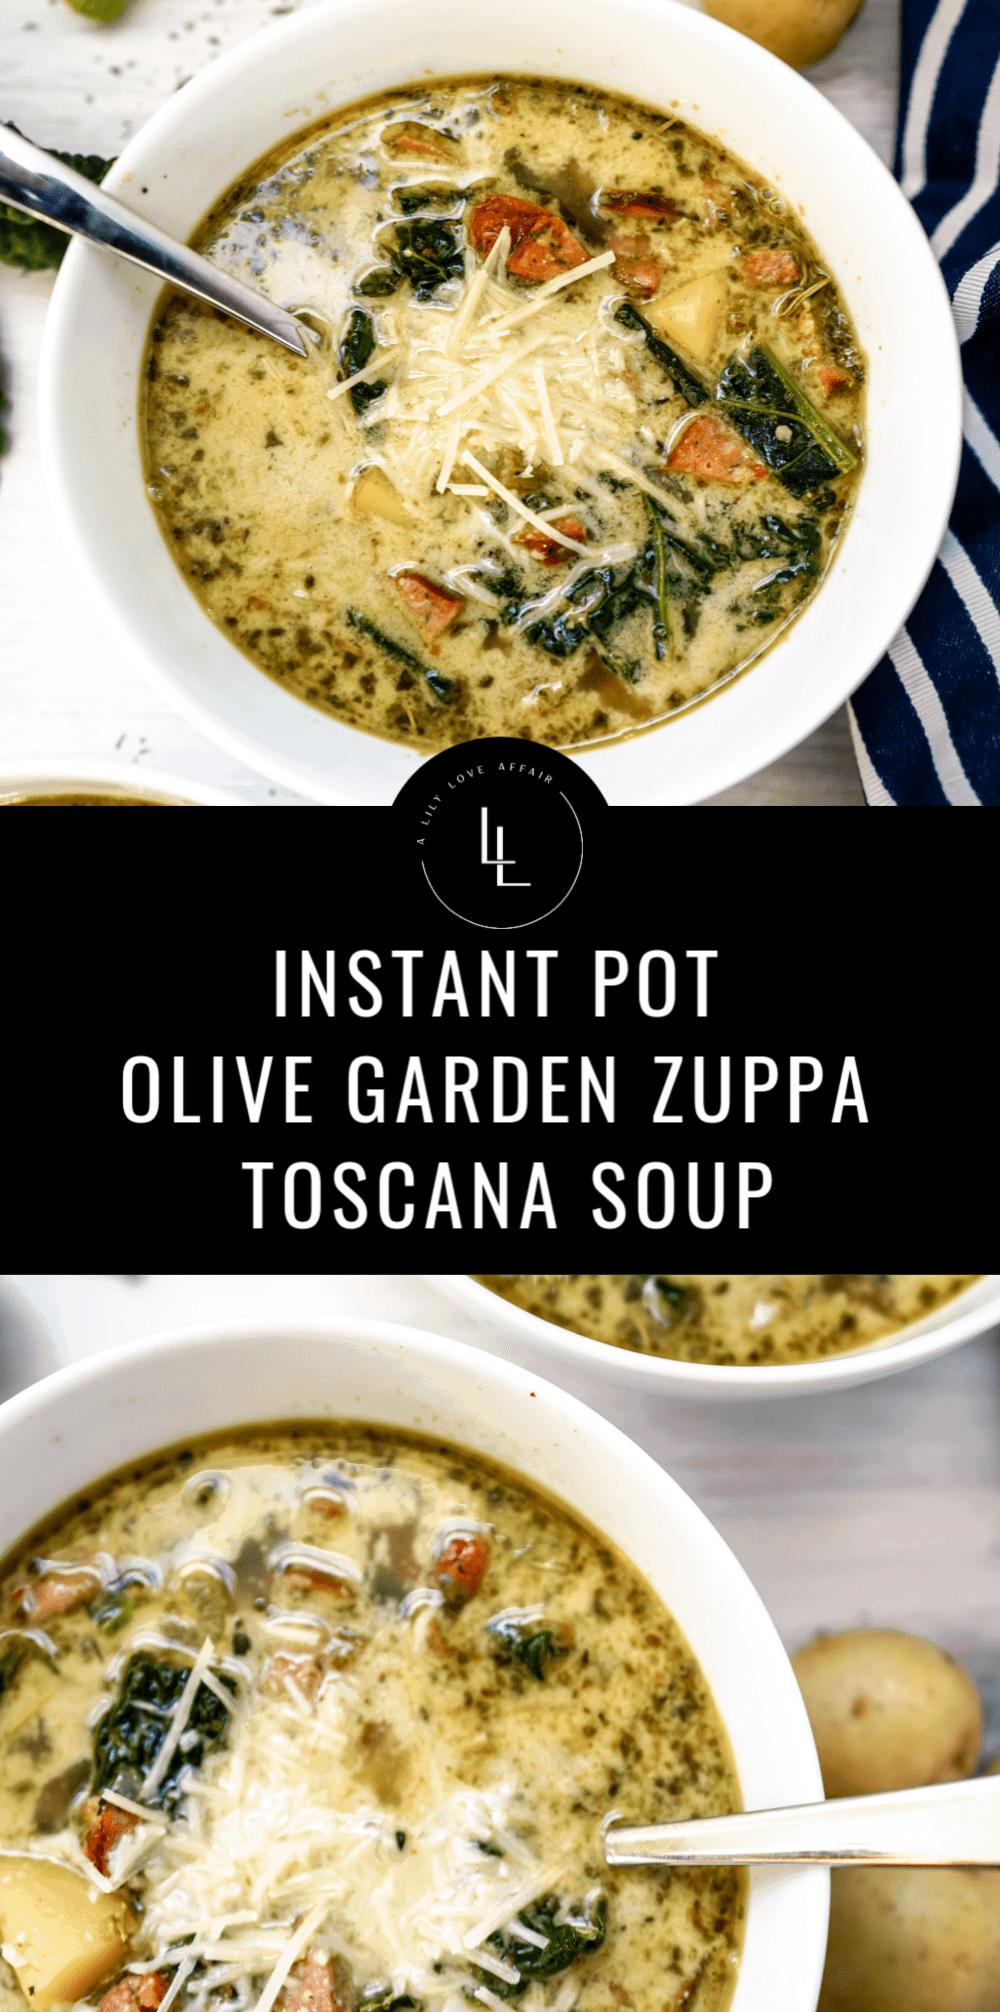 Instant Pot Zuppa Tuscana soup is easy and so flavorful! This Instant Pot soup recipe is filled is hearty ingredients like potatoes, kale, sausage, onions and more! Inspired by the Olive Garden Zuppa Toscana soup, this Instant Pot recipe is sure to be a family dinner favorite!